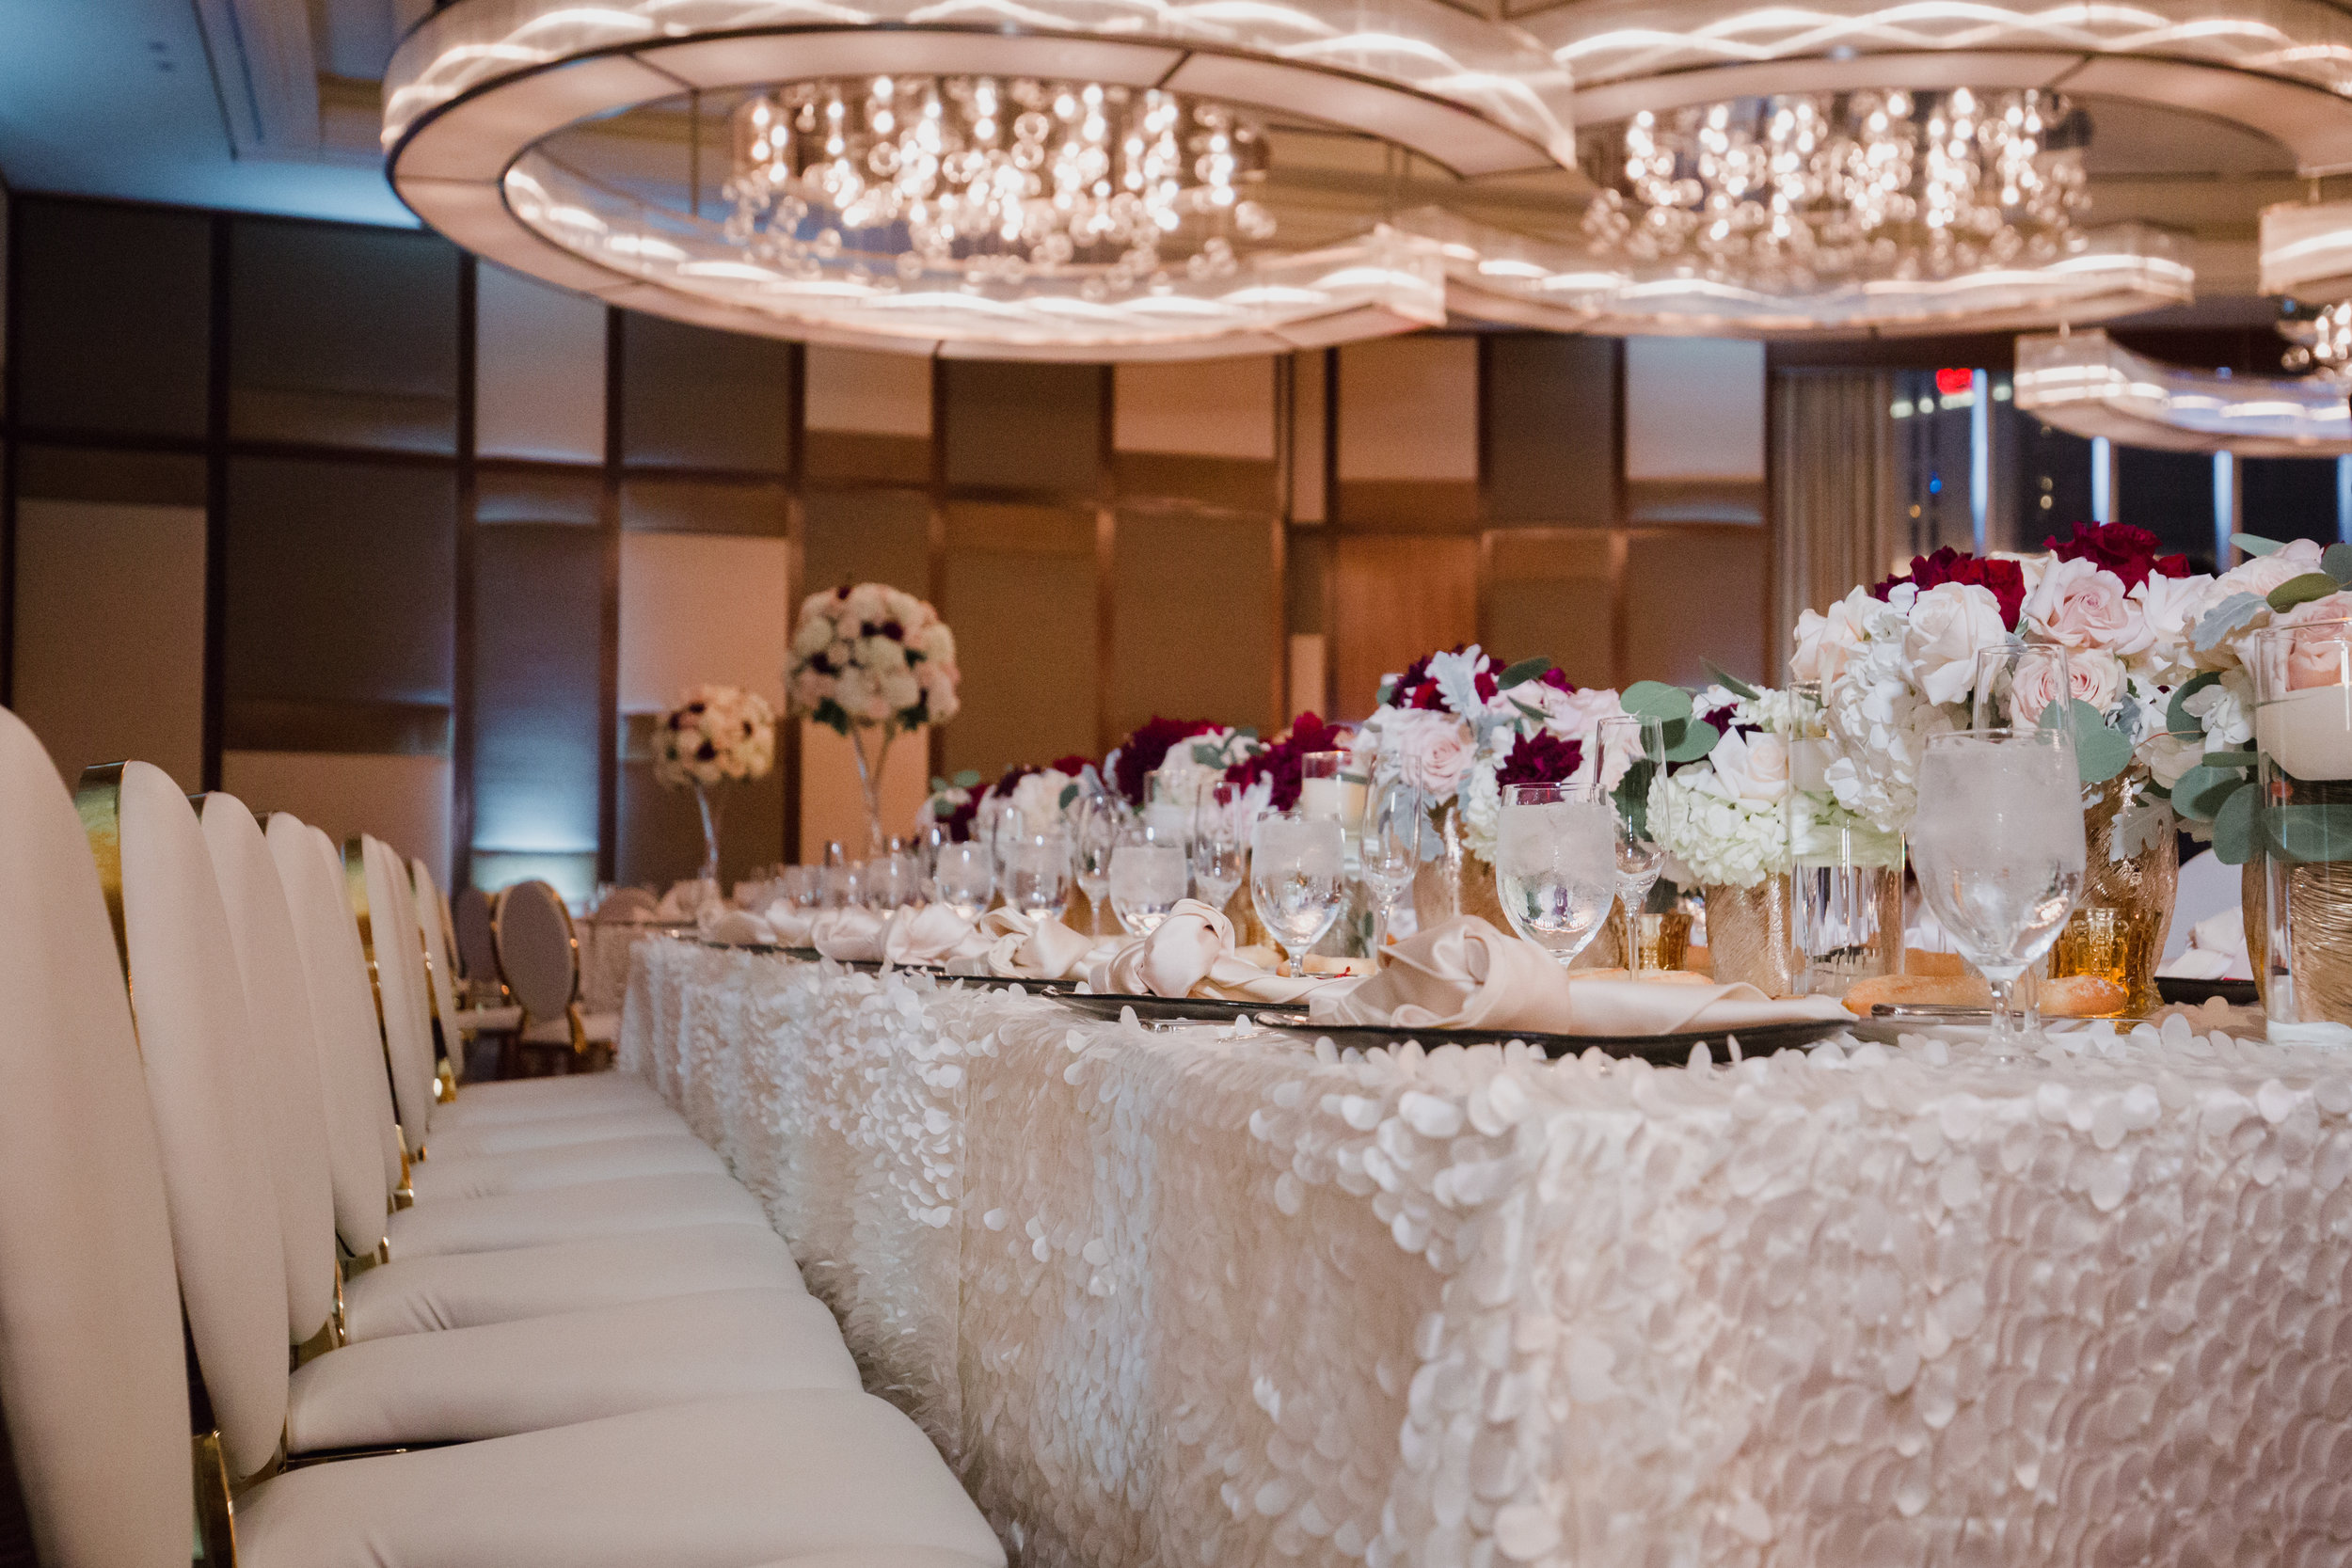 Long banquet tables with flutter linens with flowers in pink, ivory, and pops of deep red.Luxury wedding at the Mandarin Oriental with a color scheme of white, blush, and pops of wine red produced by Las Vegas Wedding Planner Andrea Eppolito with photos by Stephen Salazar Photography.